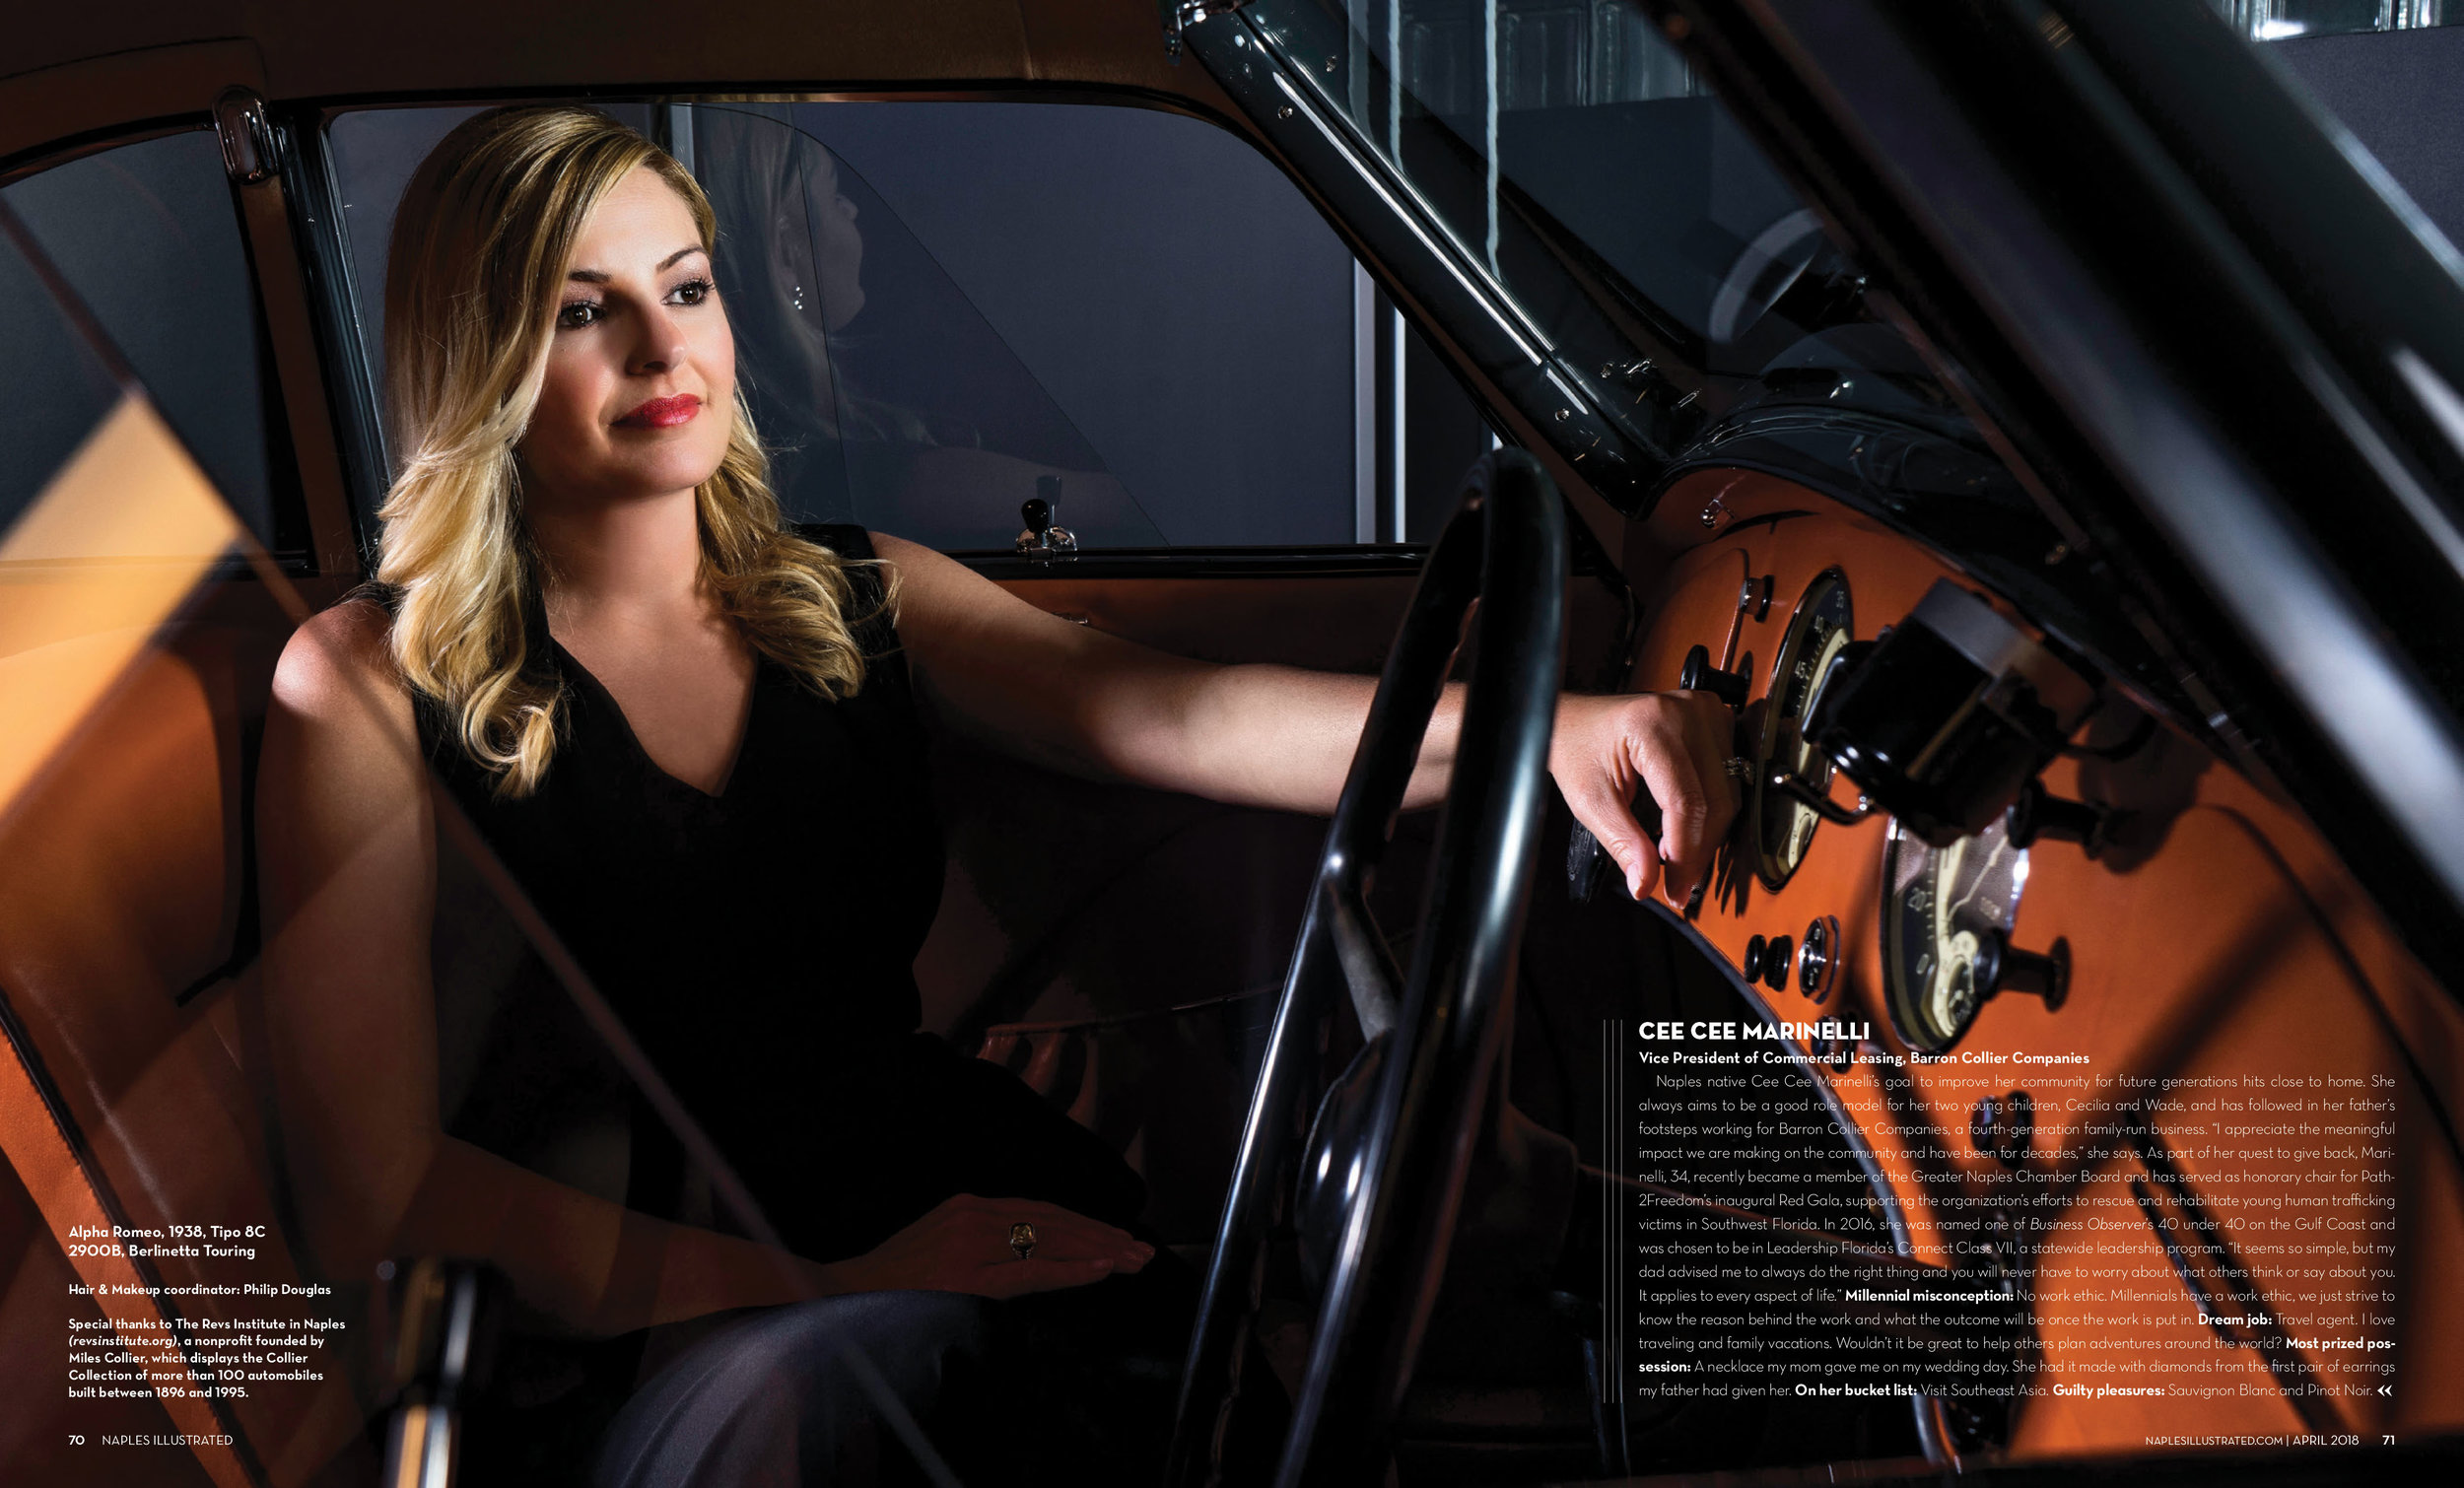 Cee Cee Marinelli, Vice President of Commercial Leasing, Barron Collier Companies in a Alpha Romeo, 1938, Type 8c 2900B, Berlinette Touring shot at The Rev's Institute in Naples, Florida March 2018 Issue of Naples Illustrated Magazine